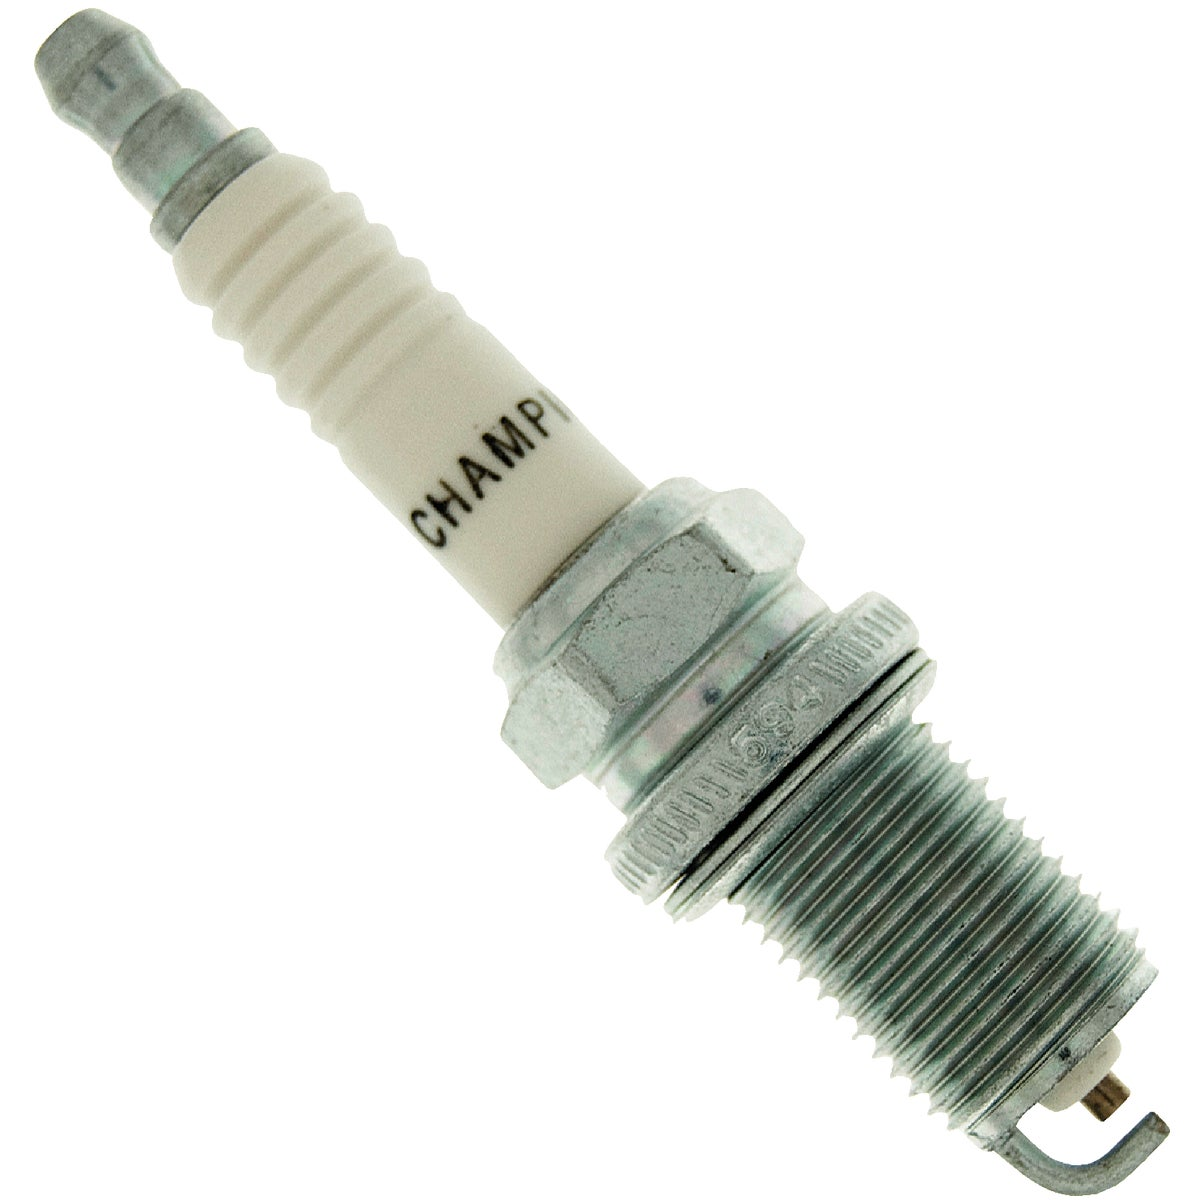 RC12YC SPARK PLUG - 71 by Federal Mogul